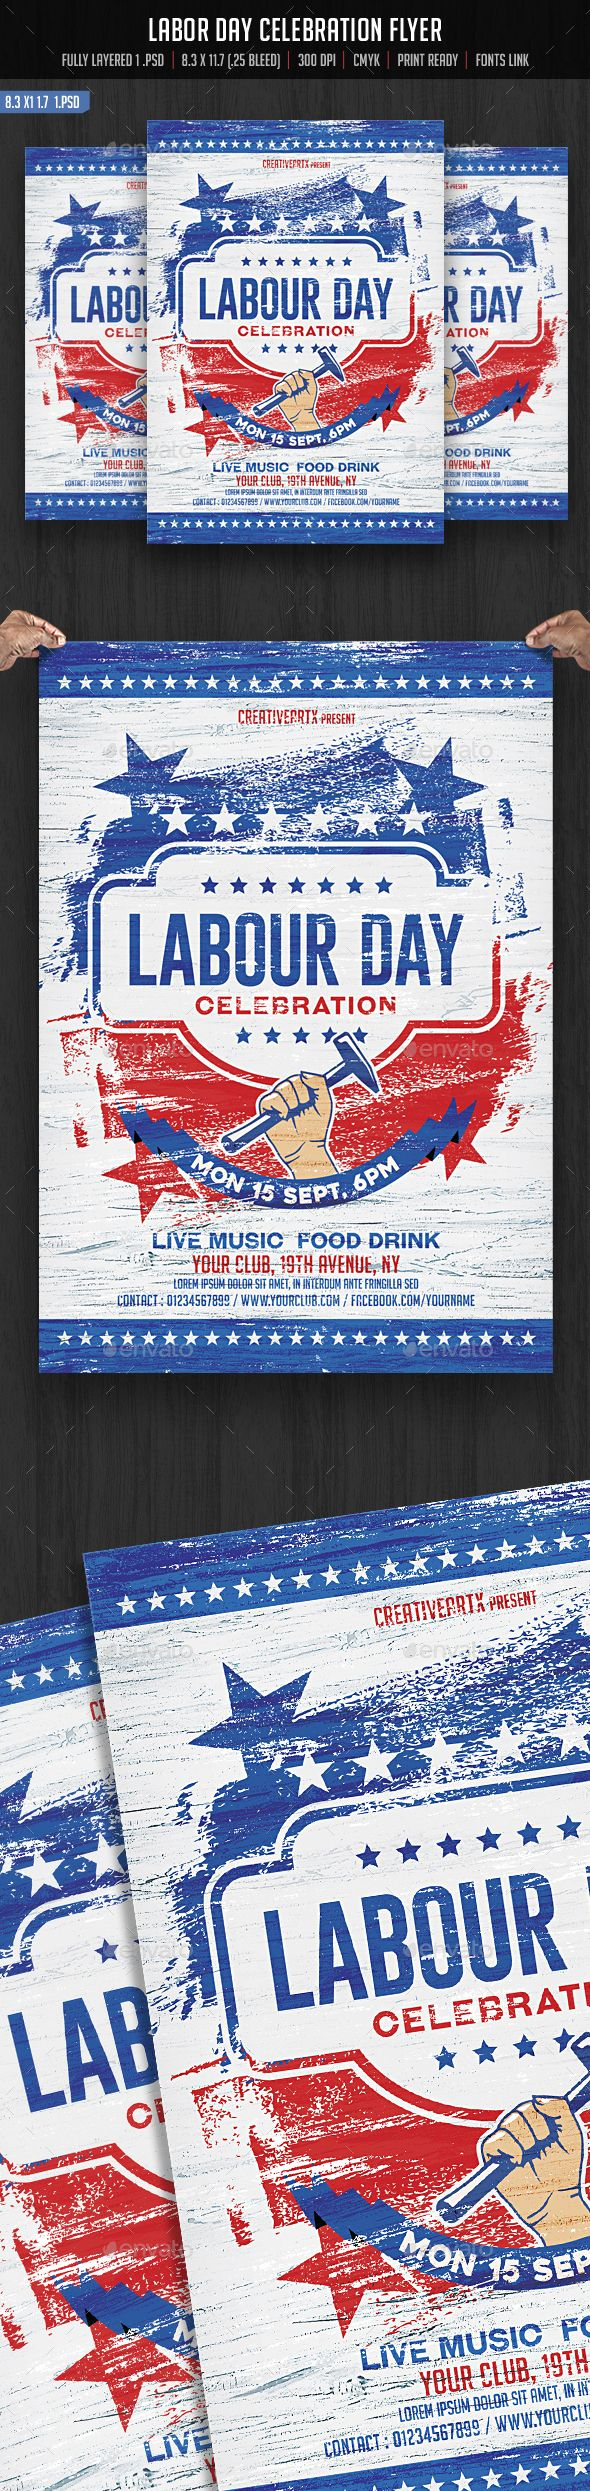 Labor Day Flyer | Pinterest | Labour, Flyer template and Template